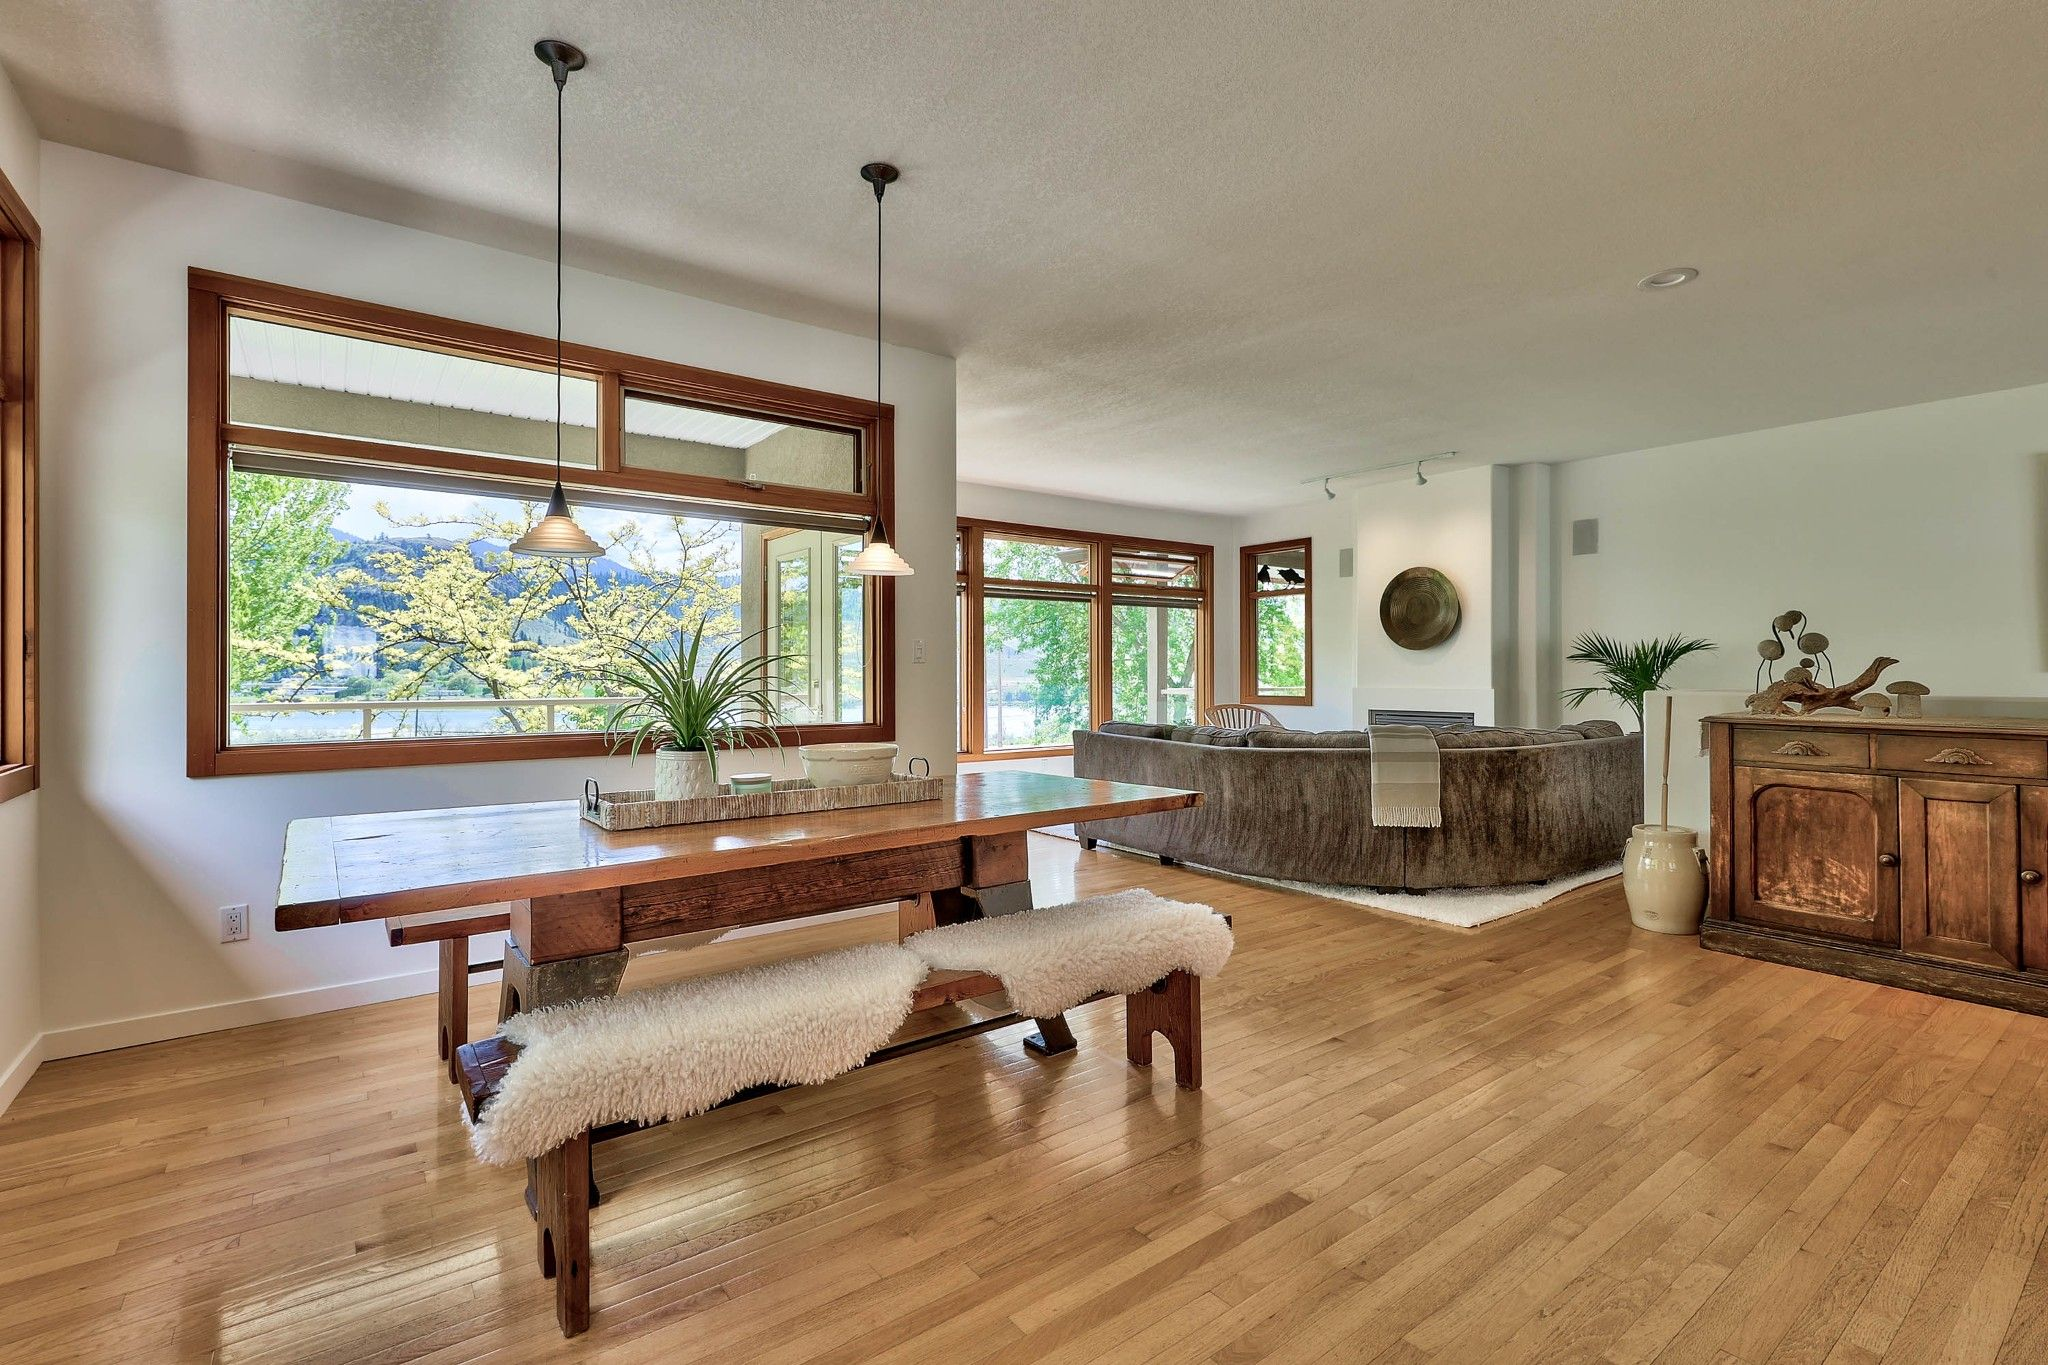 Photo 11: Photos: 3299 E Shuswap Road in Kamloops: South Thompson Valley House for sale : MLS®# 162162